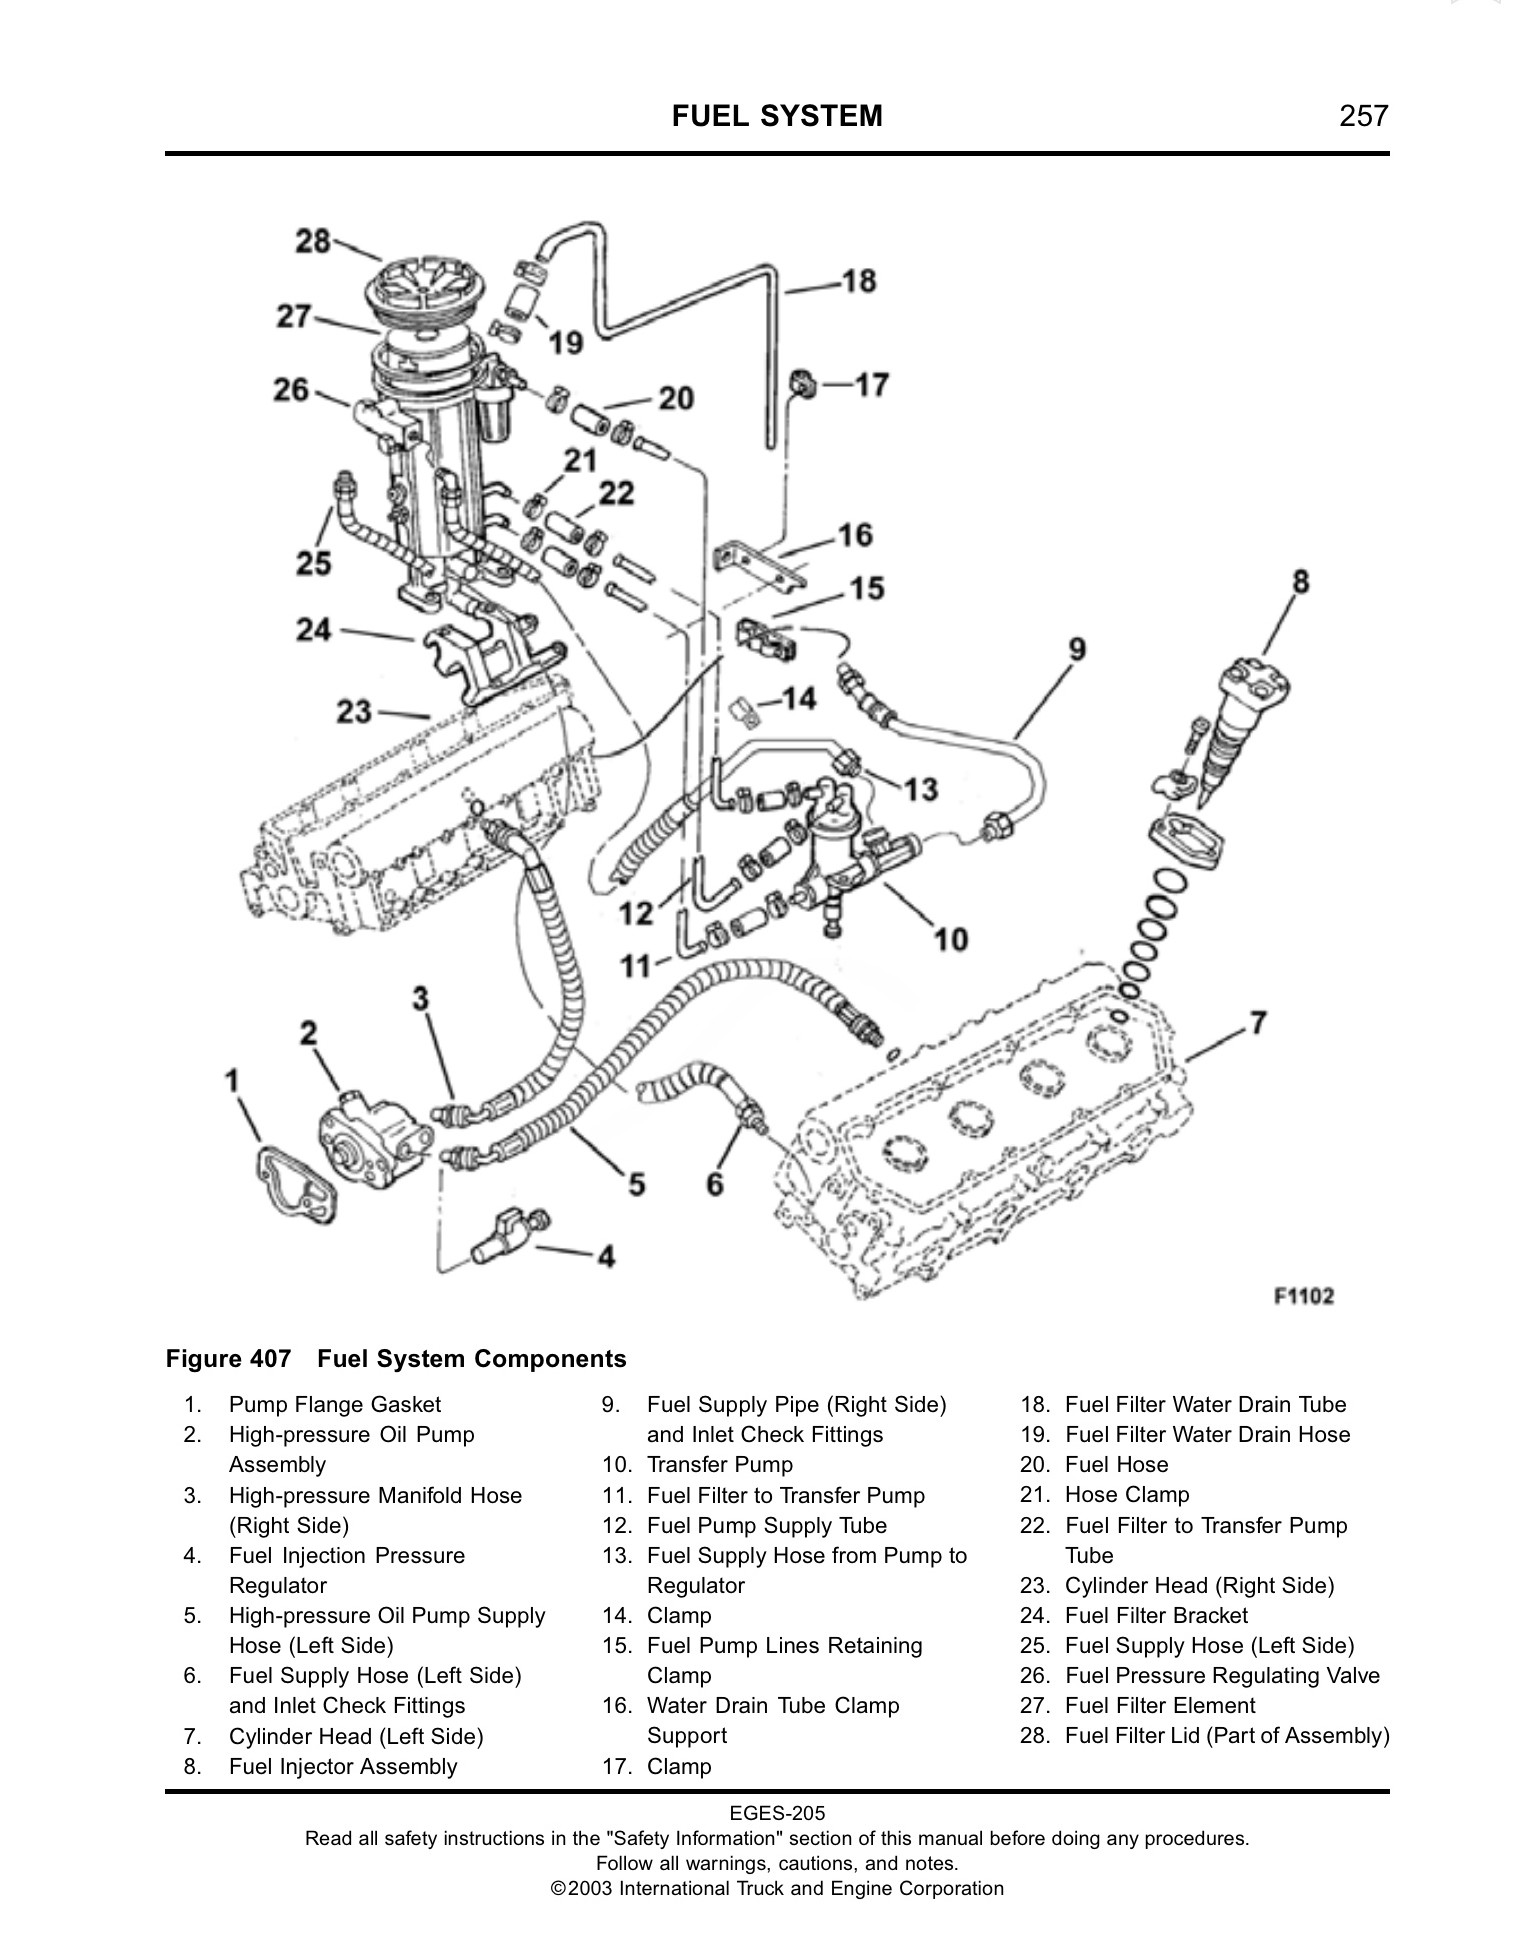 School Bus Engine Diagram T444e Stock Fuel System Help Needed School Bus Conversion Resources Of School Bus Engine Diagram